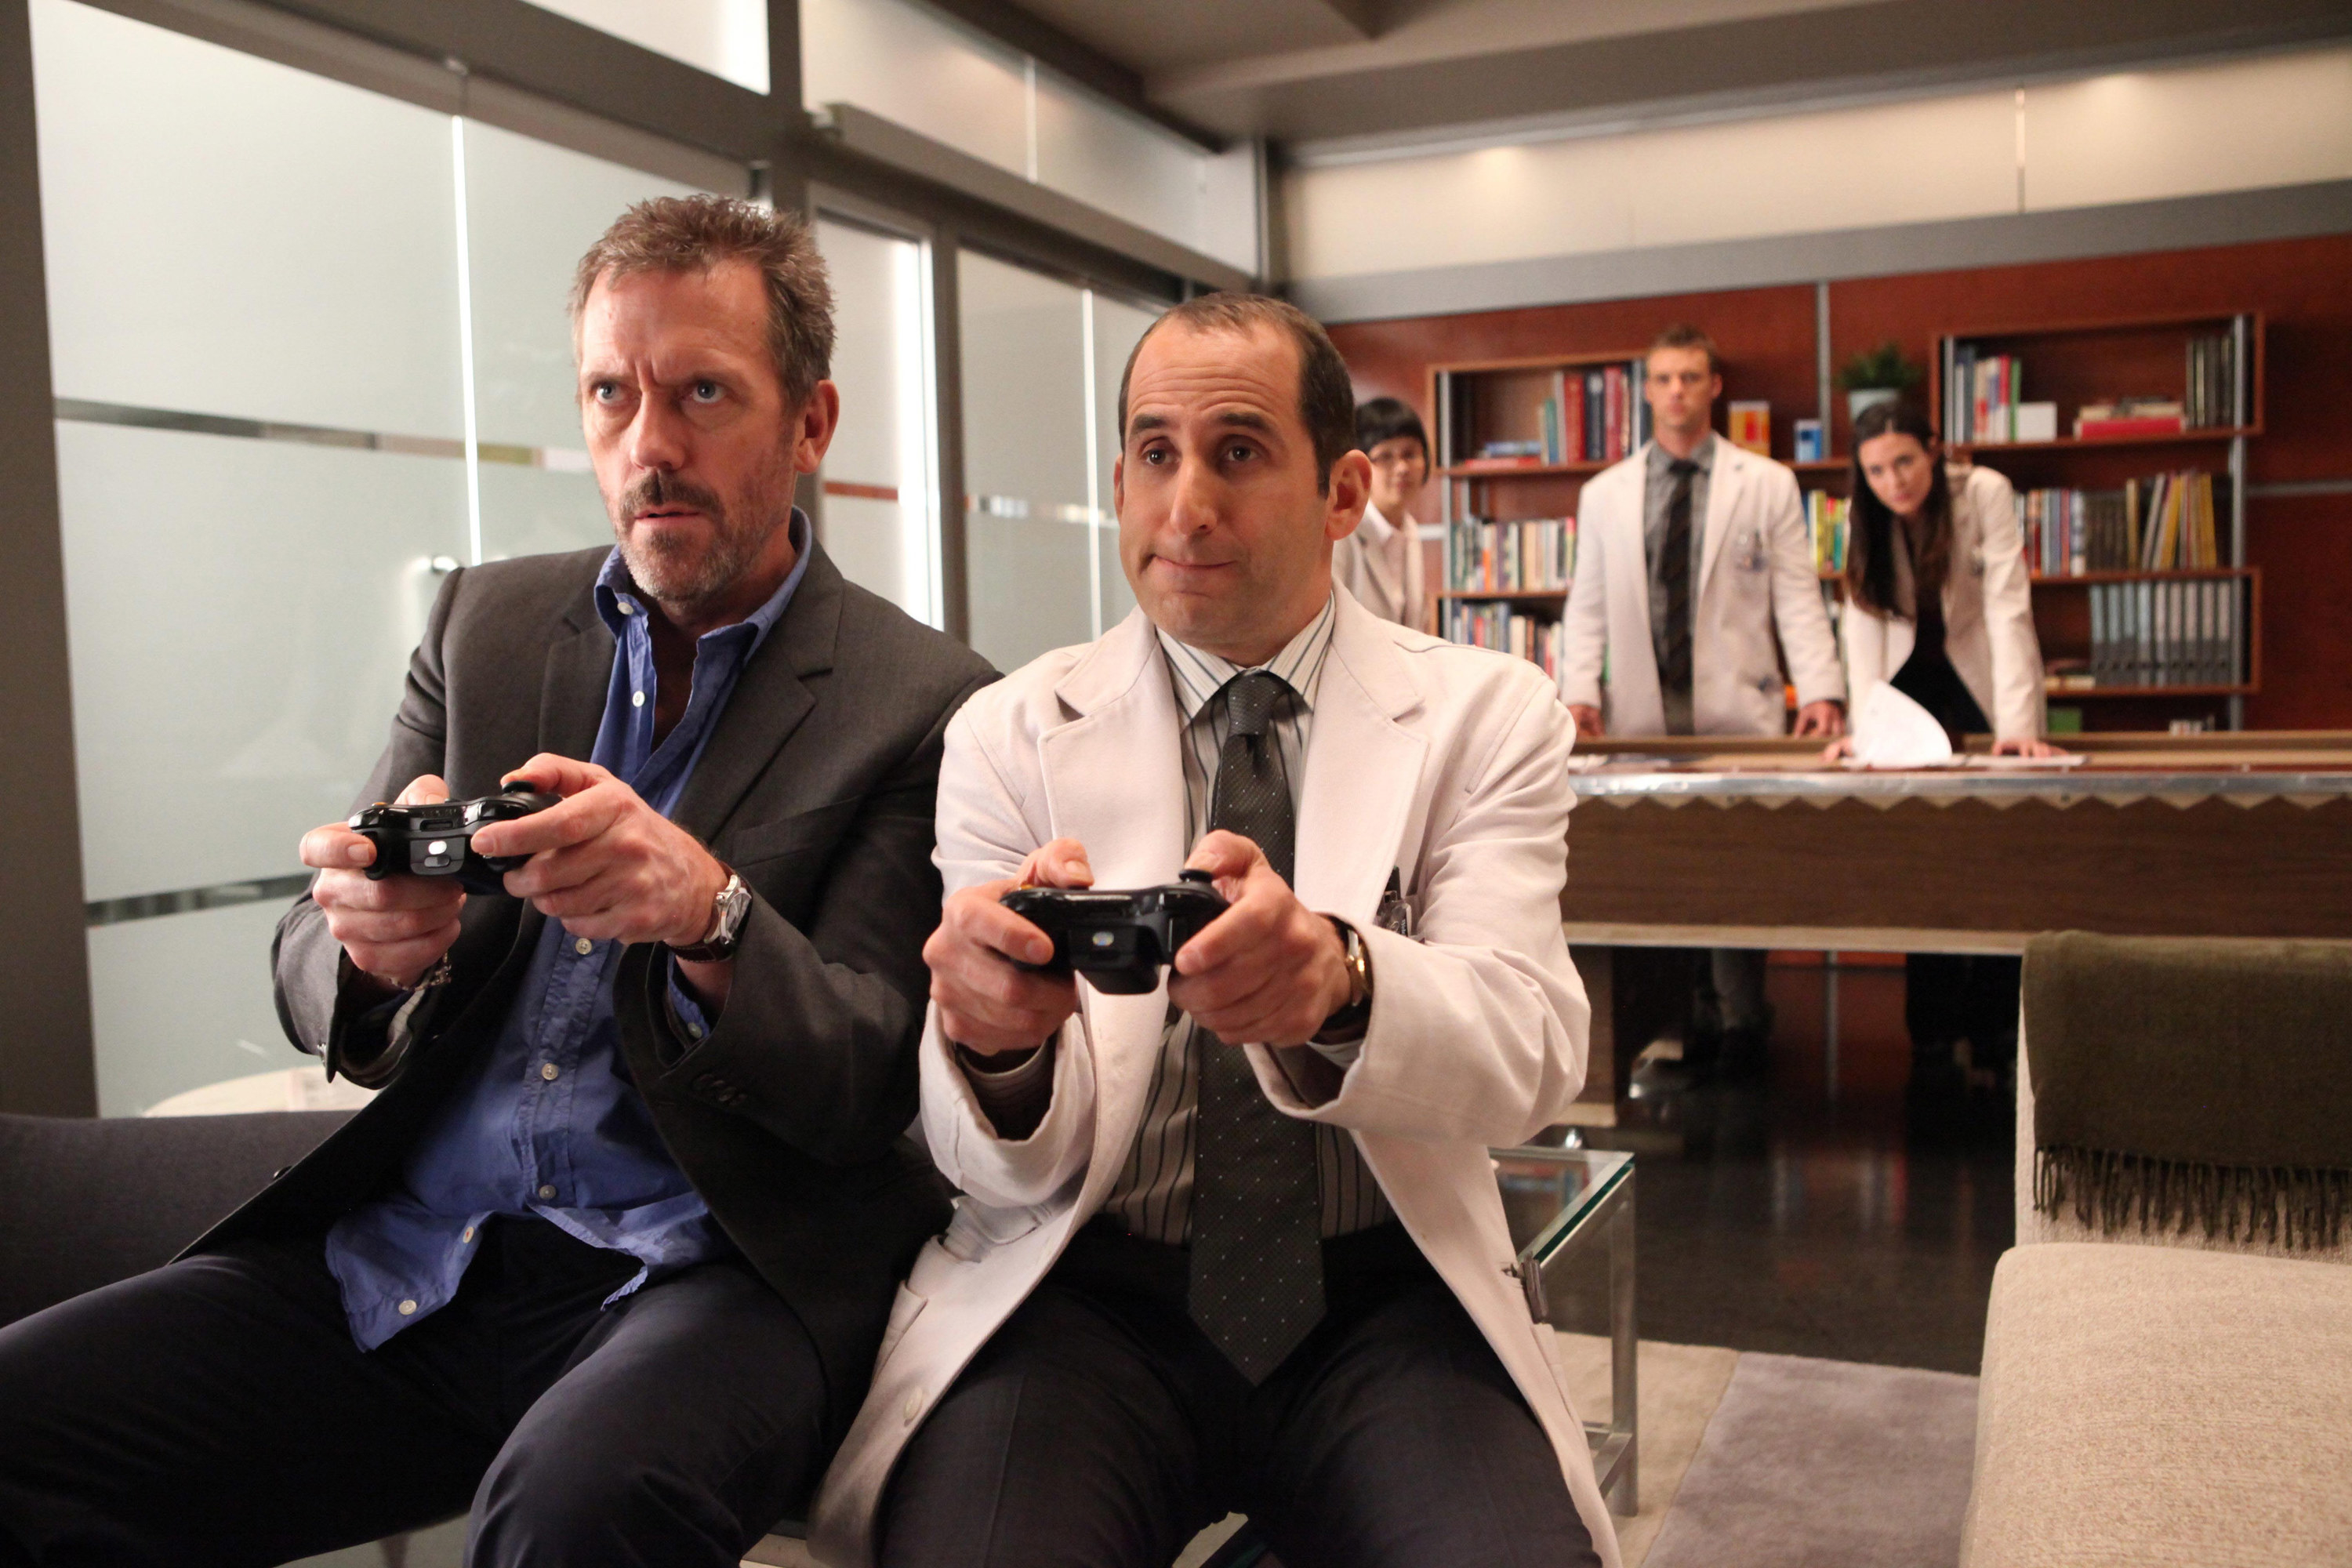 HOUSE, (from left): Hugh Laurie, Peter Jacobson, 'Blowing The Whistle', (Season 8, ep. 815, aired April 2, 2012), 2004-.